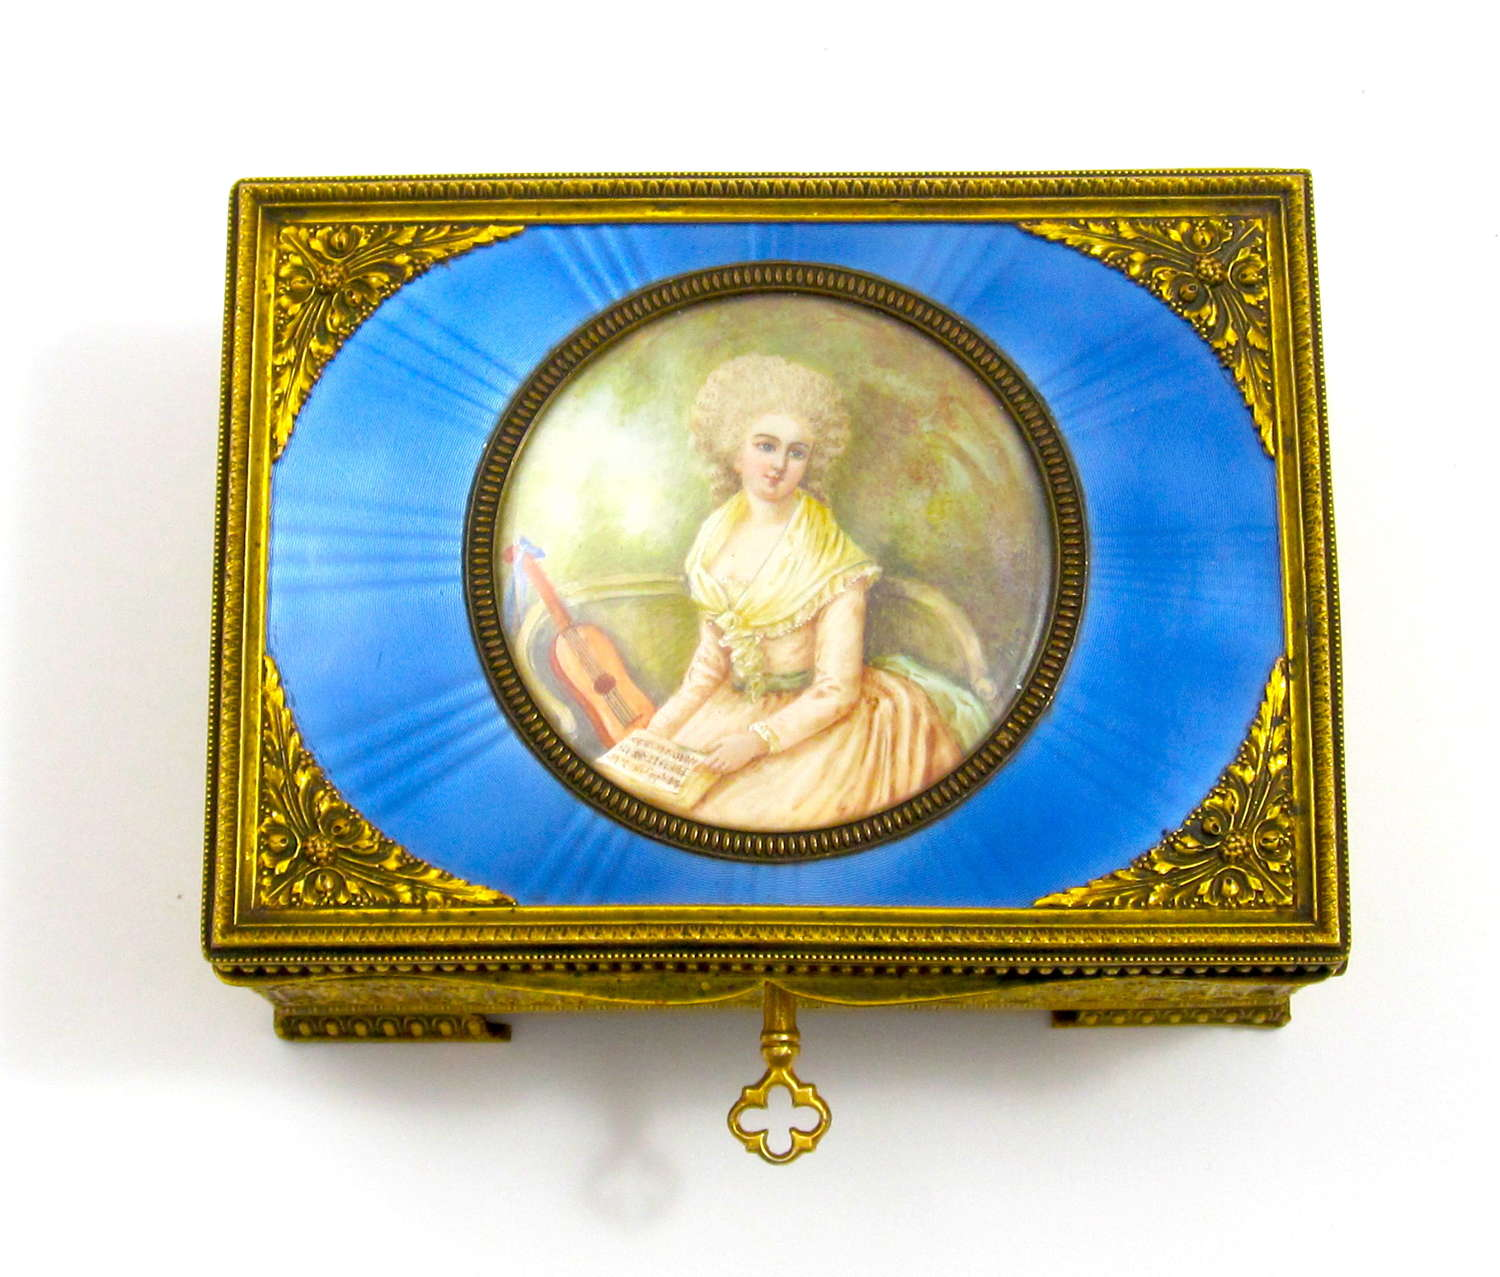 High Quality French Enamel Guillouche Box with Signed Miniature